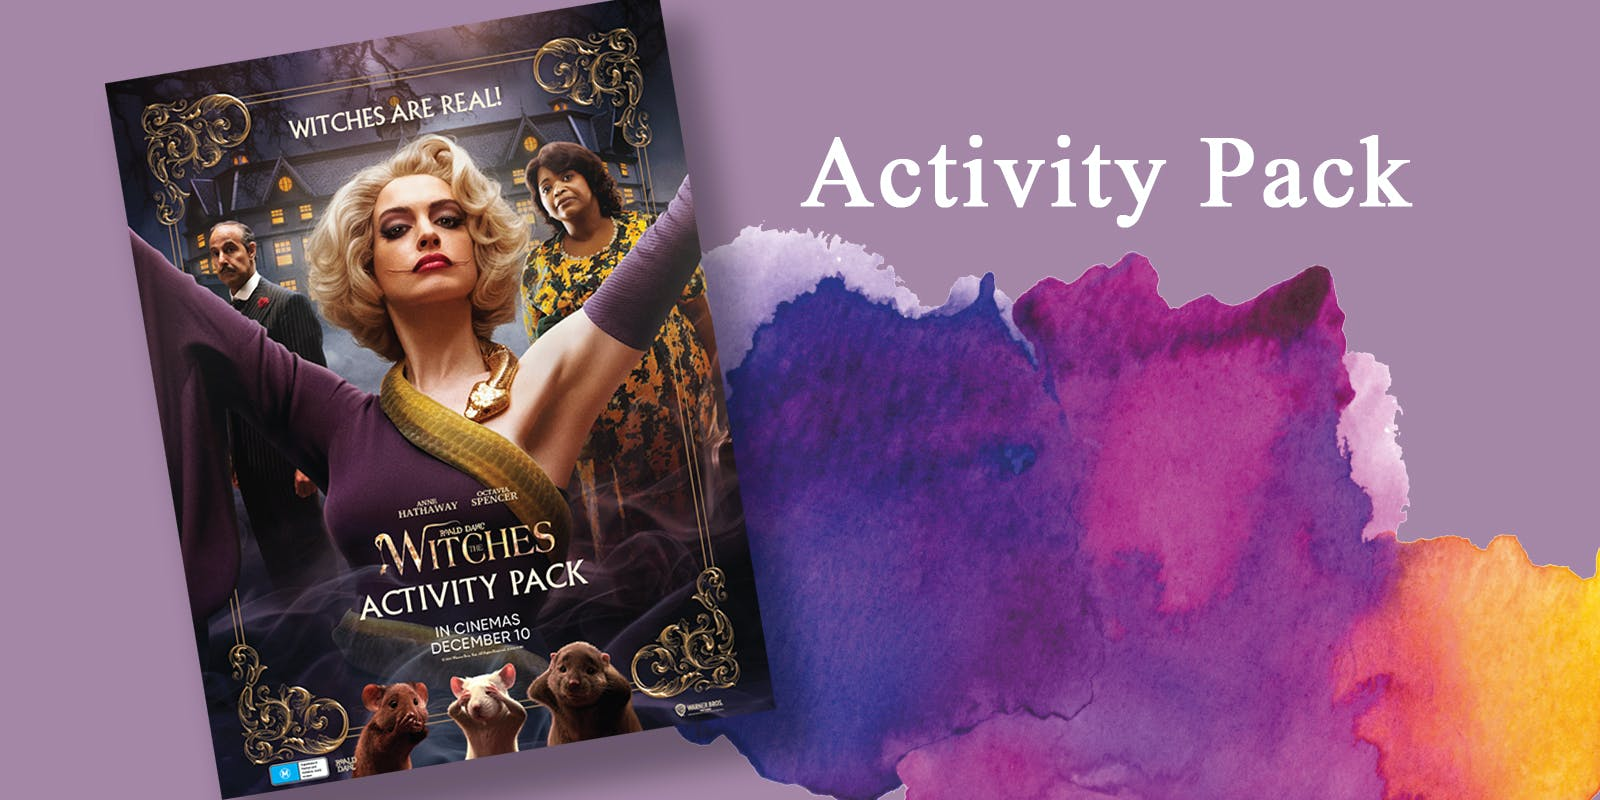 The Witches Activity Pack